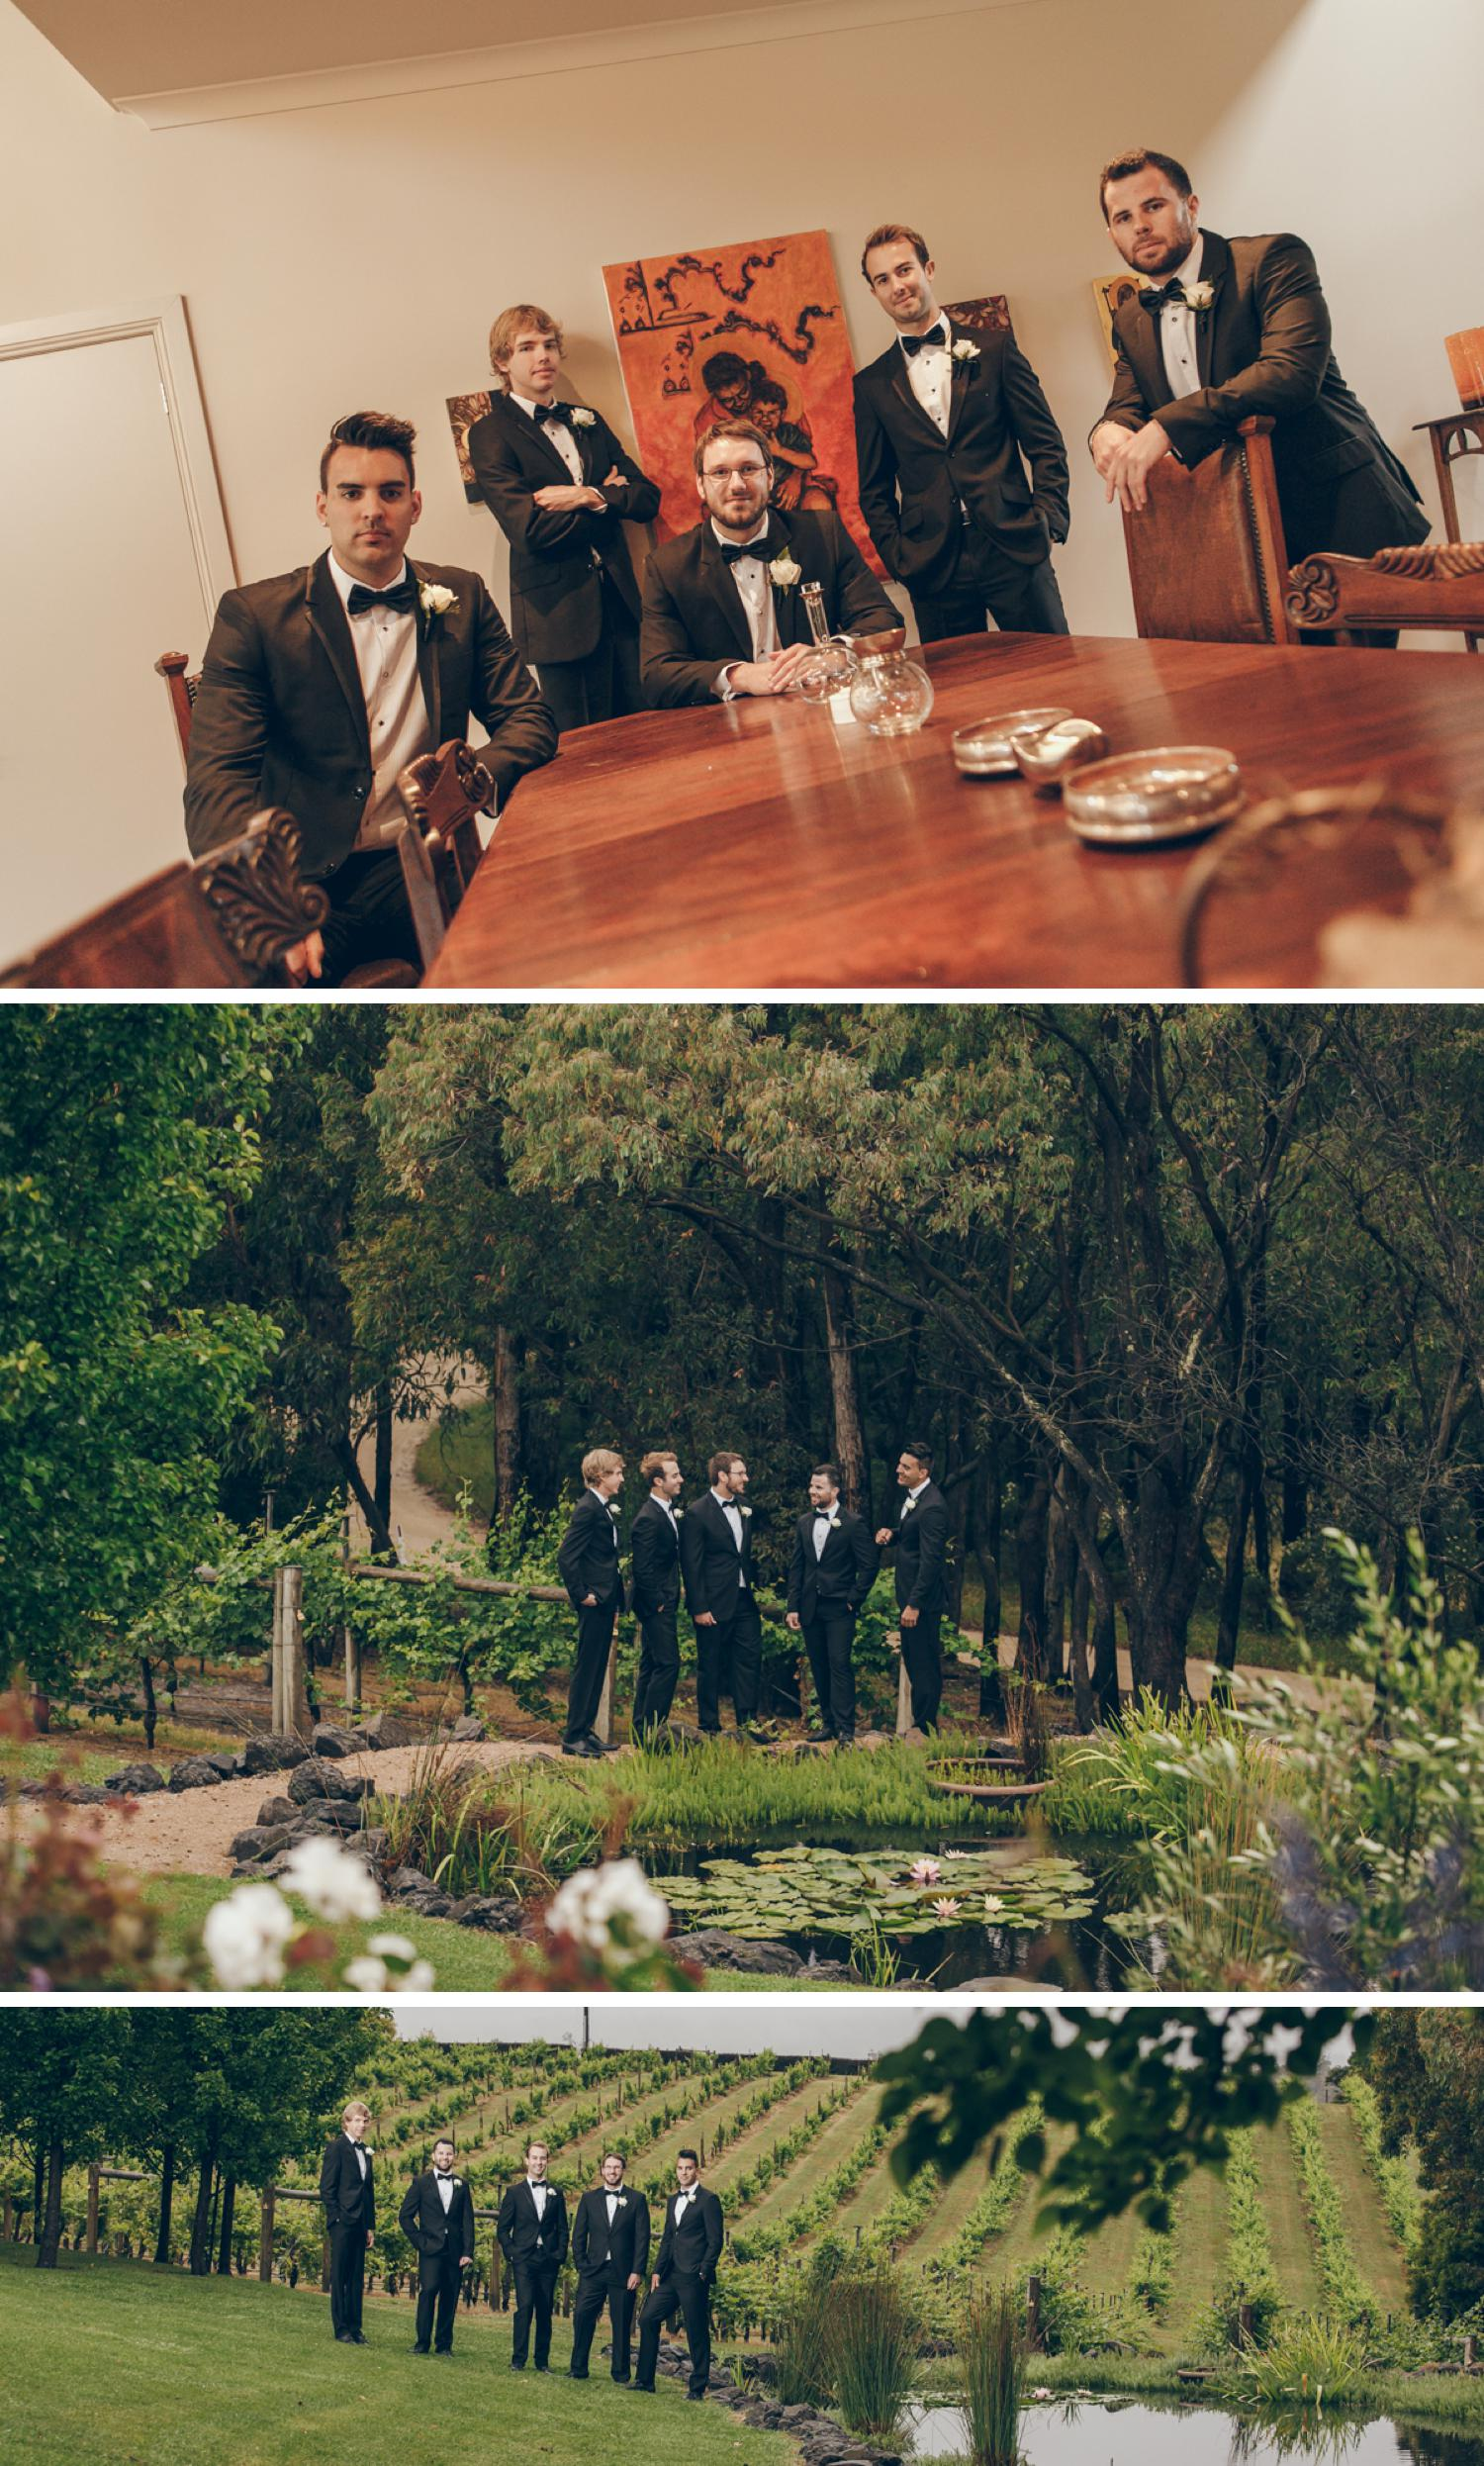 Tom's Cap Vineyard Gippsland Wedding Photo, Vineyard Wedding Photos by Danae Studios, Groom Getting Ready